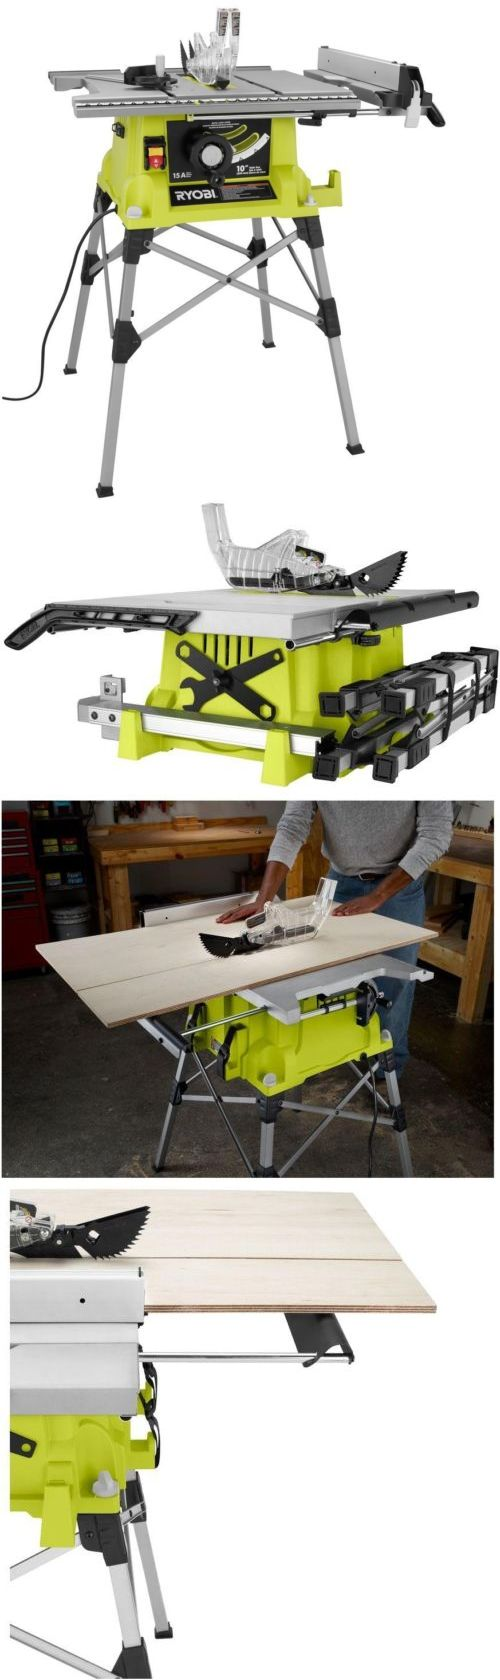 Best 25 Ryobi Table Saw Ideas On Pinterest Building Furniture Craftsman Router And Portable